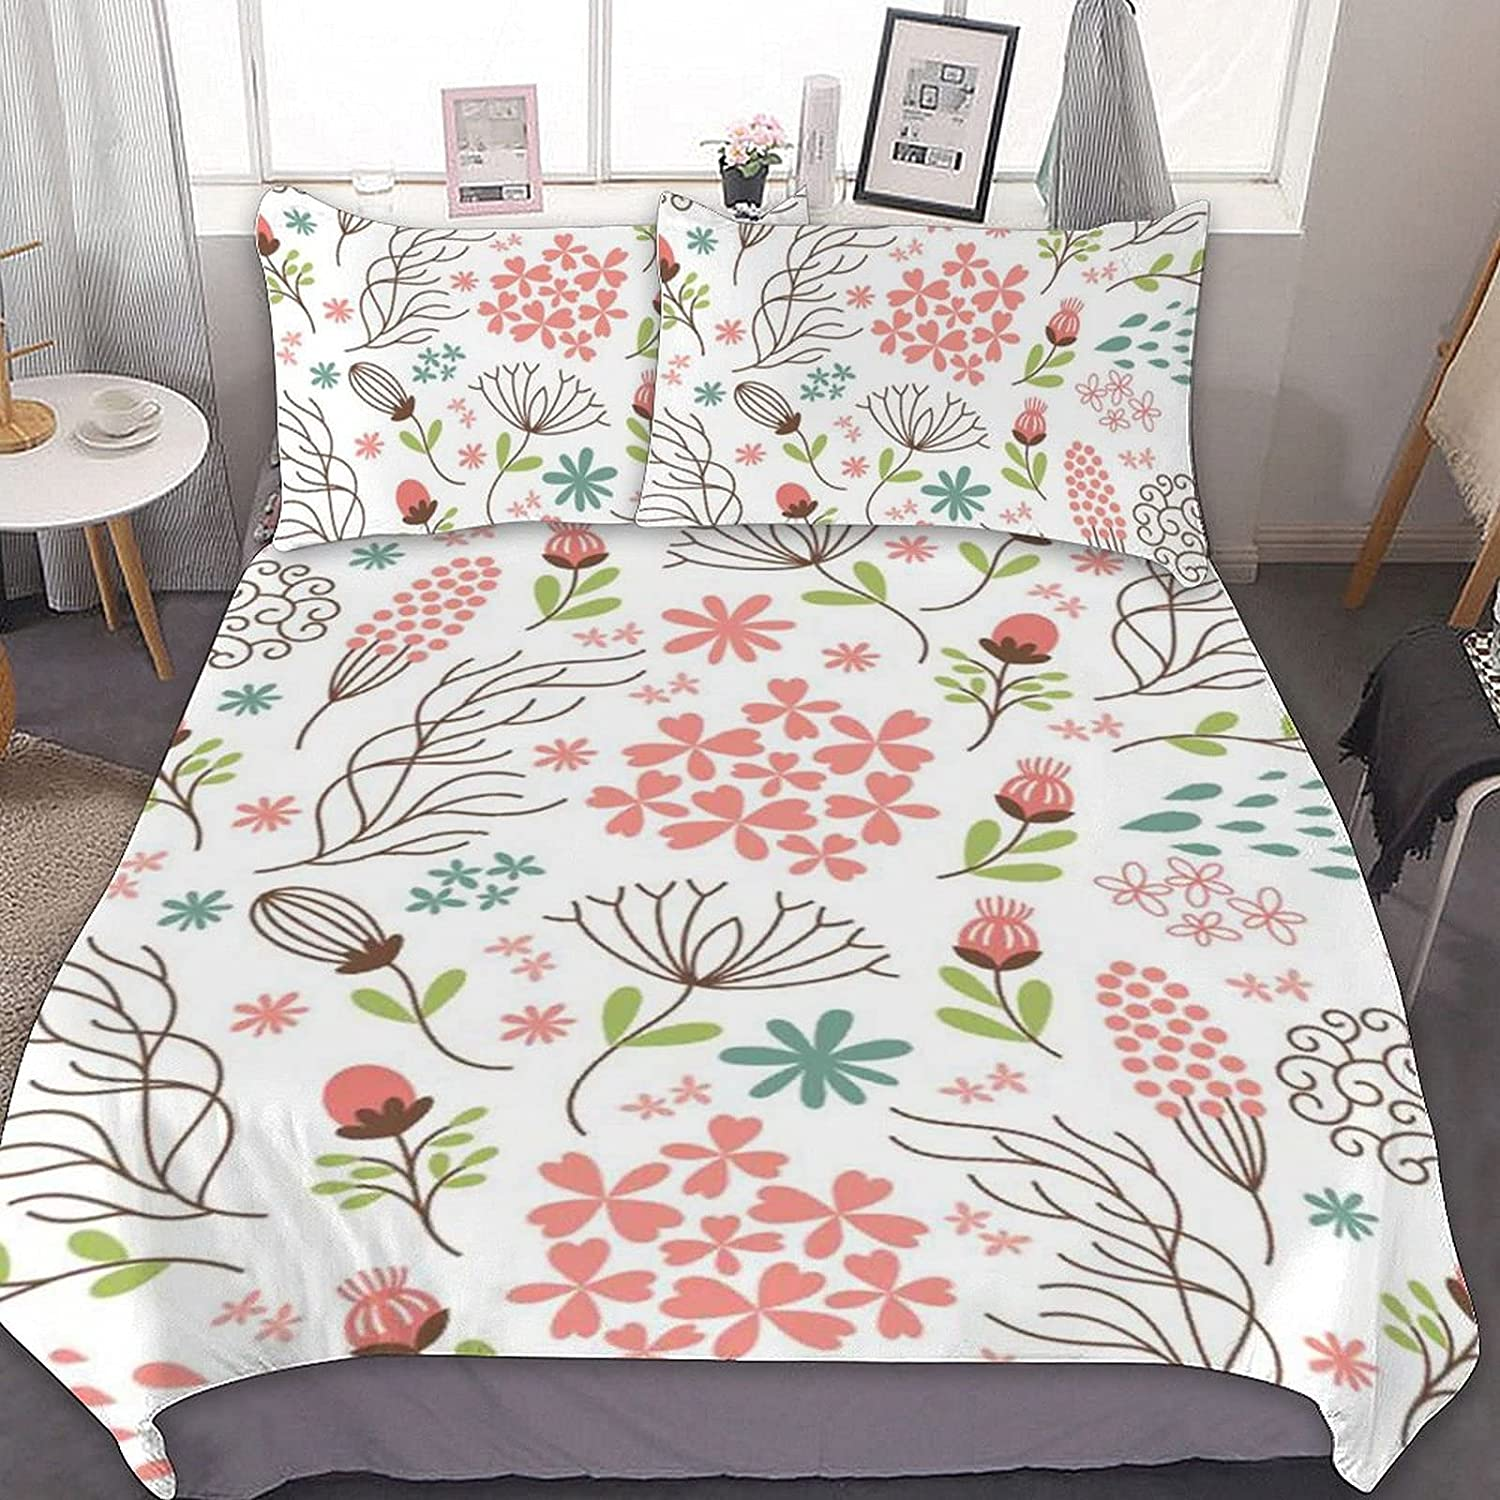 PNNUO Floral Pattern Queen Bed Set Max 43% OFF Twin Comforter Full King Ranking TOP6 Size